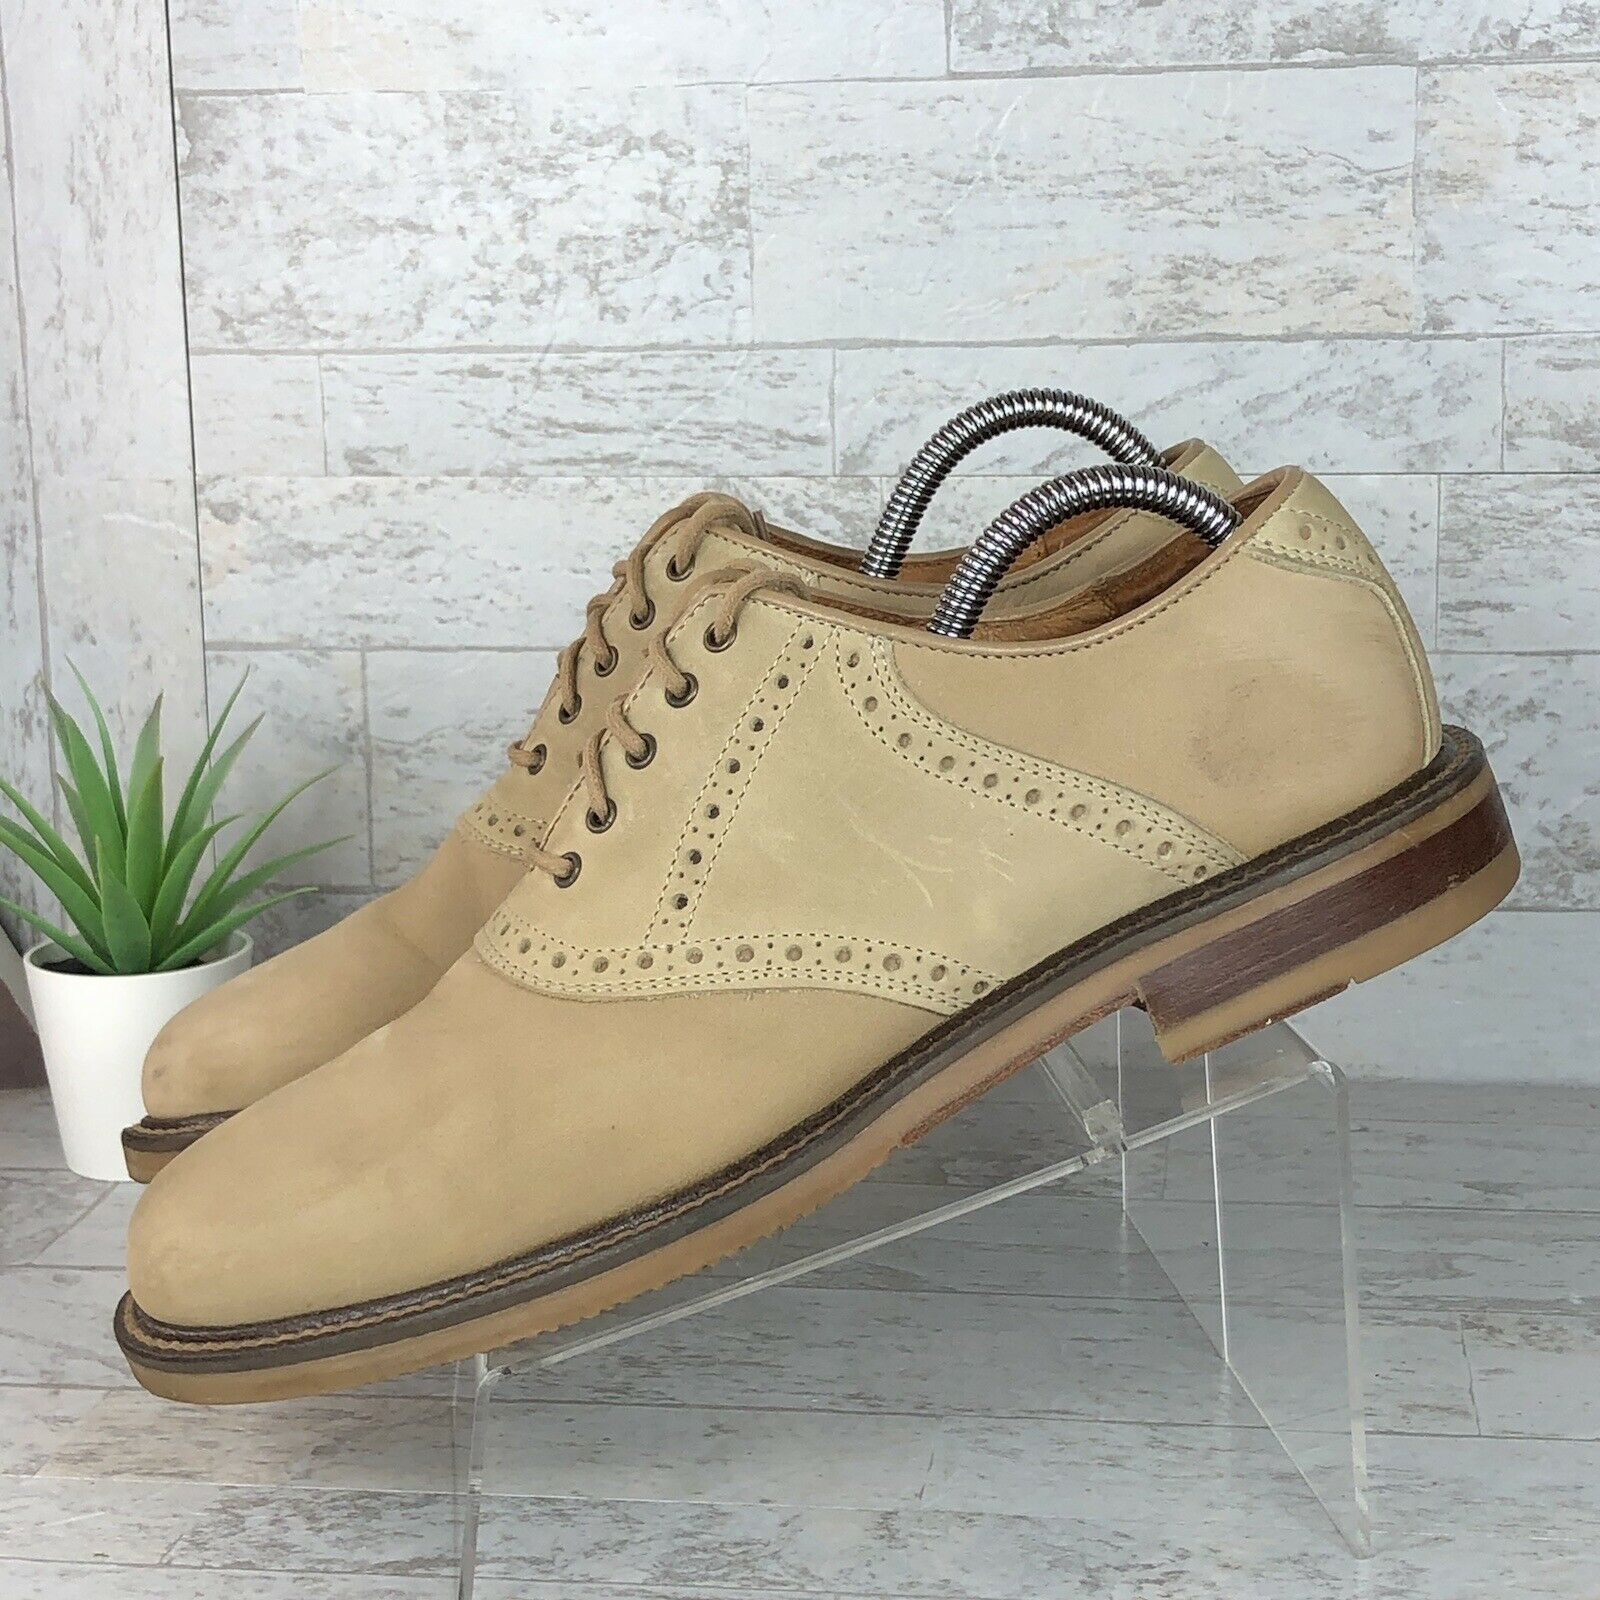 Johnston & Murphy Made in ITALY Oxford Tan Nubuck Leather Men's Size 8 M GUC